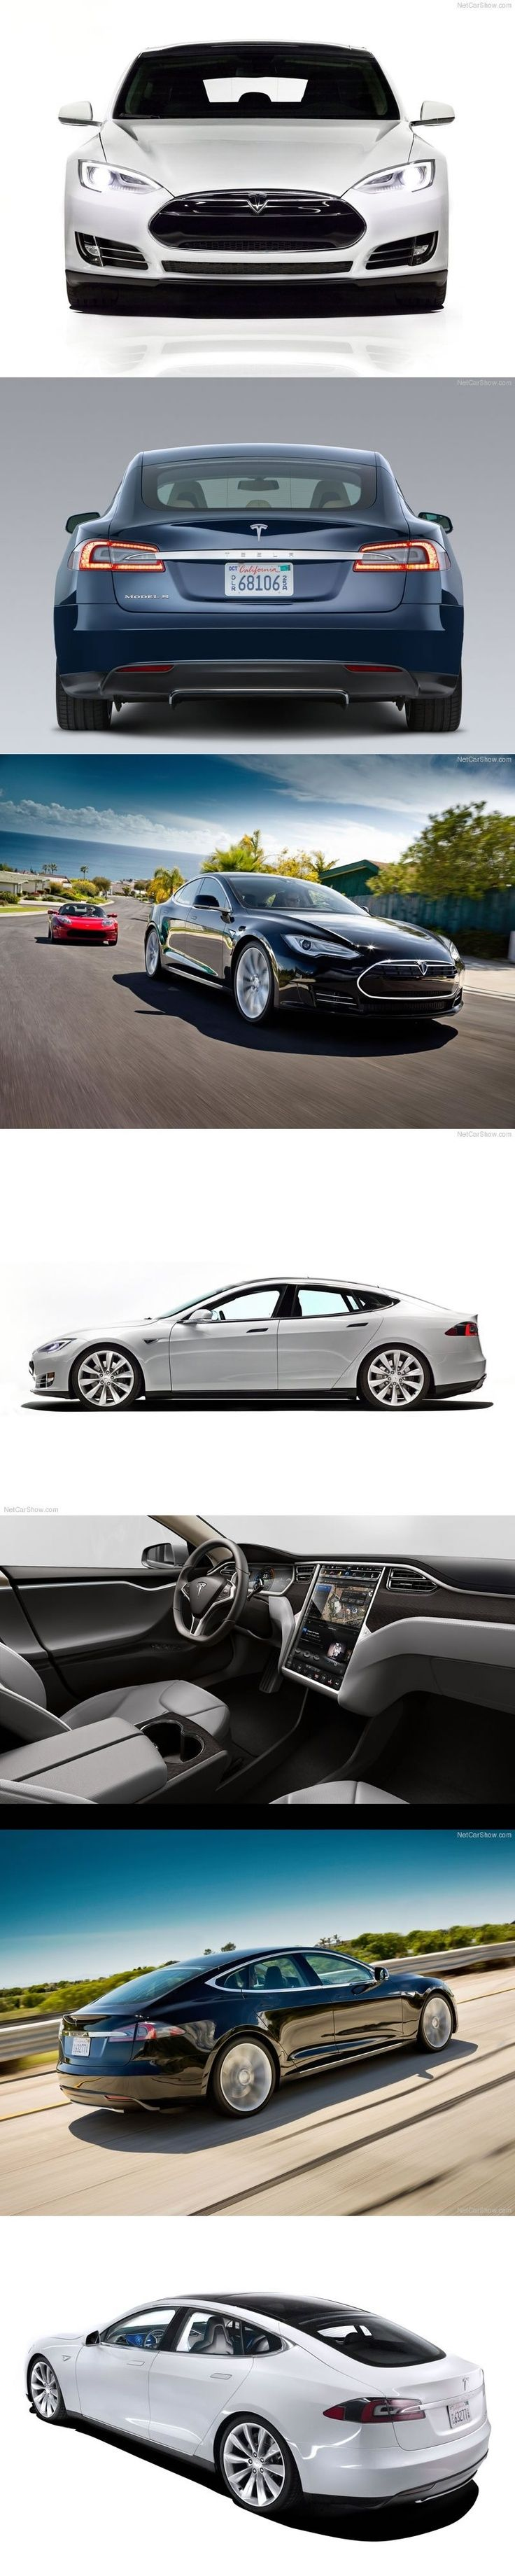 'The car of the future...today' This stunning #Tesla Model S is innovation in car design. You could WIN one by clicking on the image, now. #ClickToWin #eBayGarage #spon